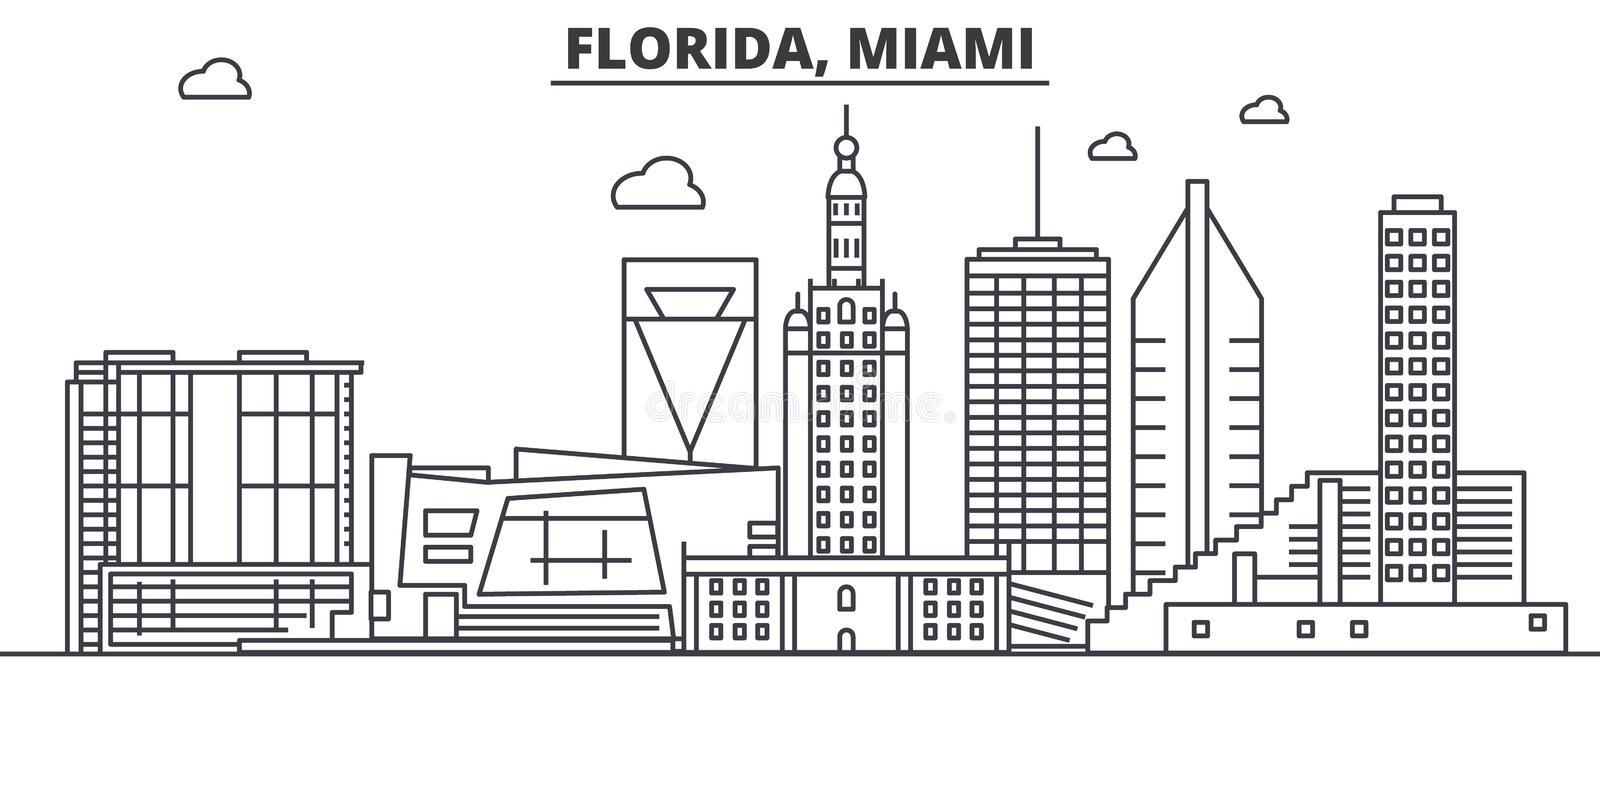 Florida Miami architecture line skyline illustration. Linear vector cityscape with famous landmarks, city sights, design vector illustration